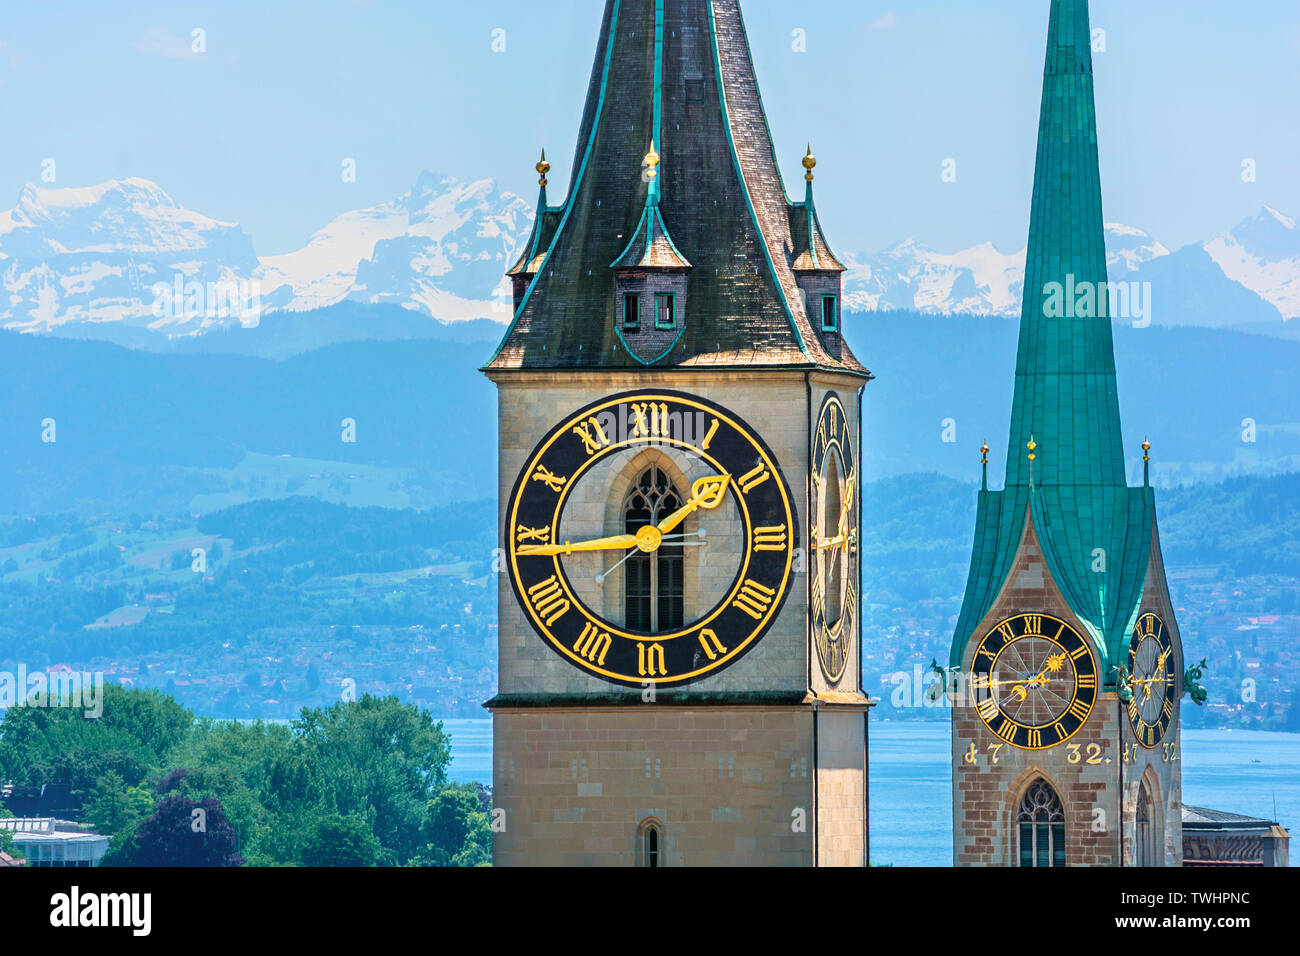 Saint Peter and Fraumünster Church in Zurich (Switzerland) in front of lake Zurich and the Swiss Alps - Stock Image